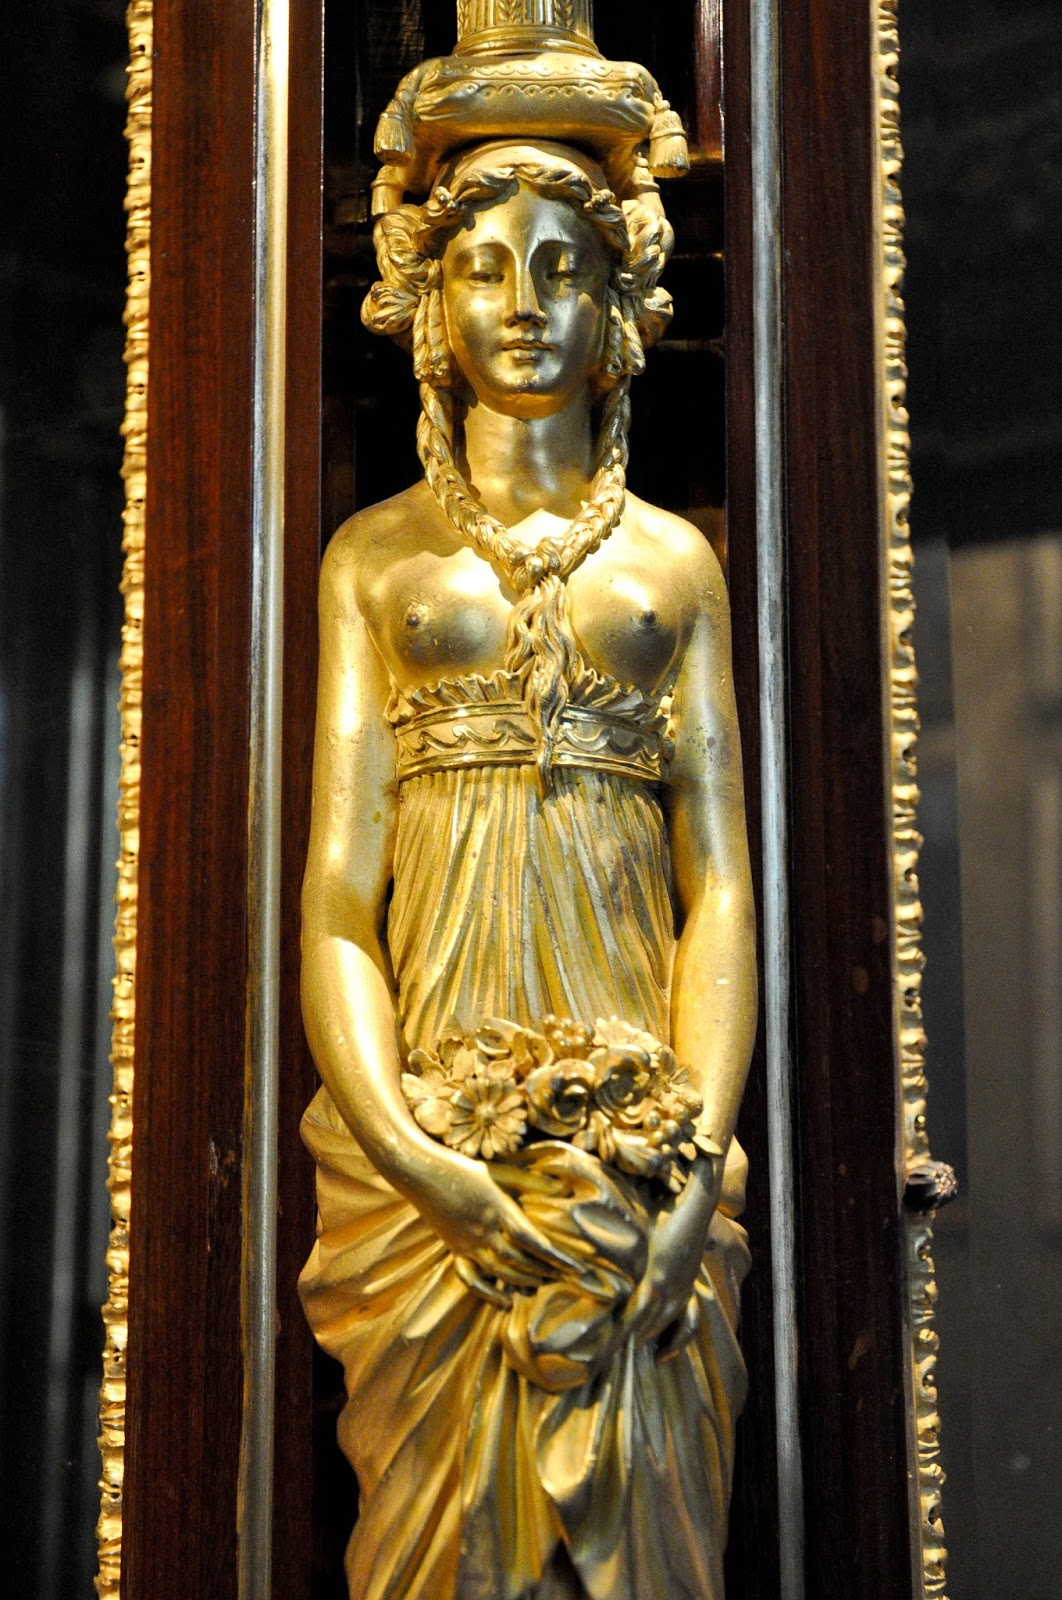 Close-up of the rich ornamentation on a palanquin, First floor, Palazzo Madama, Turin, Italy